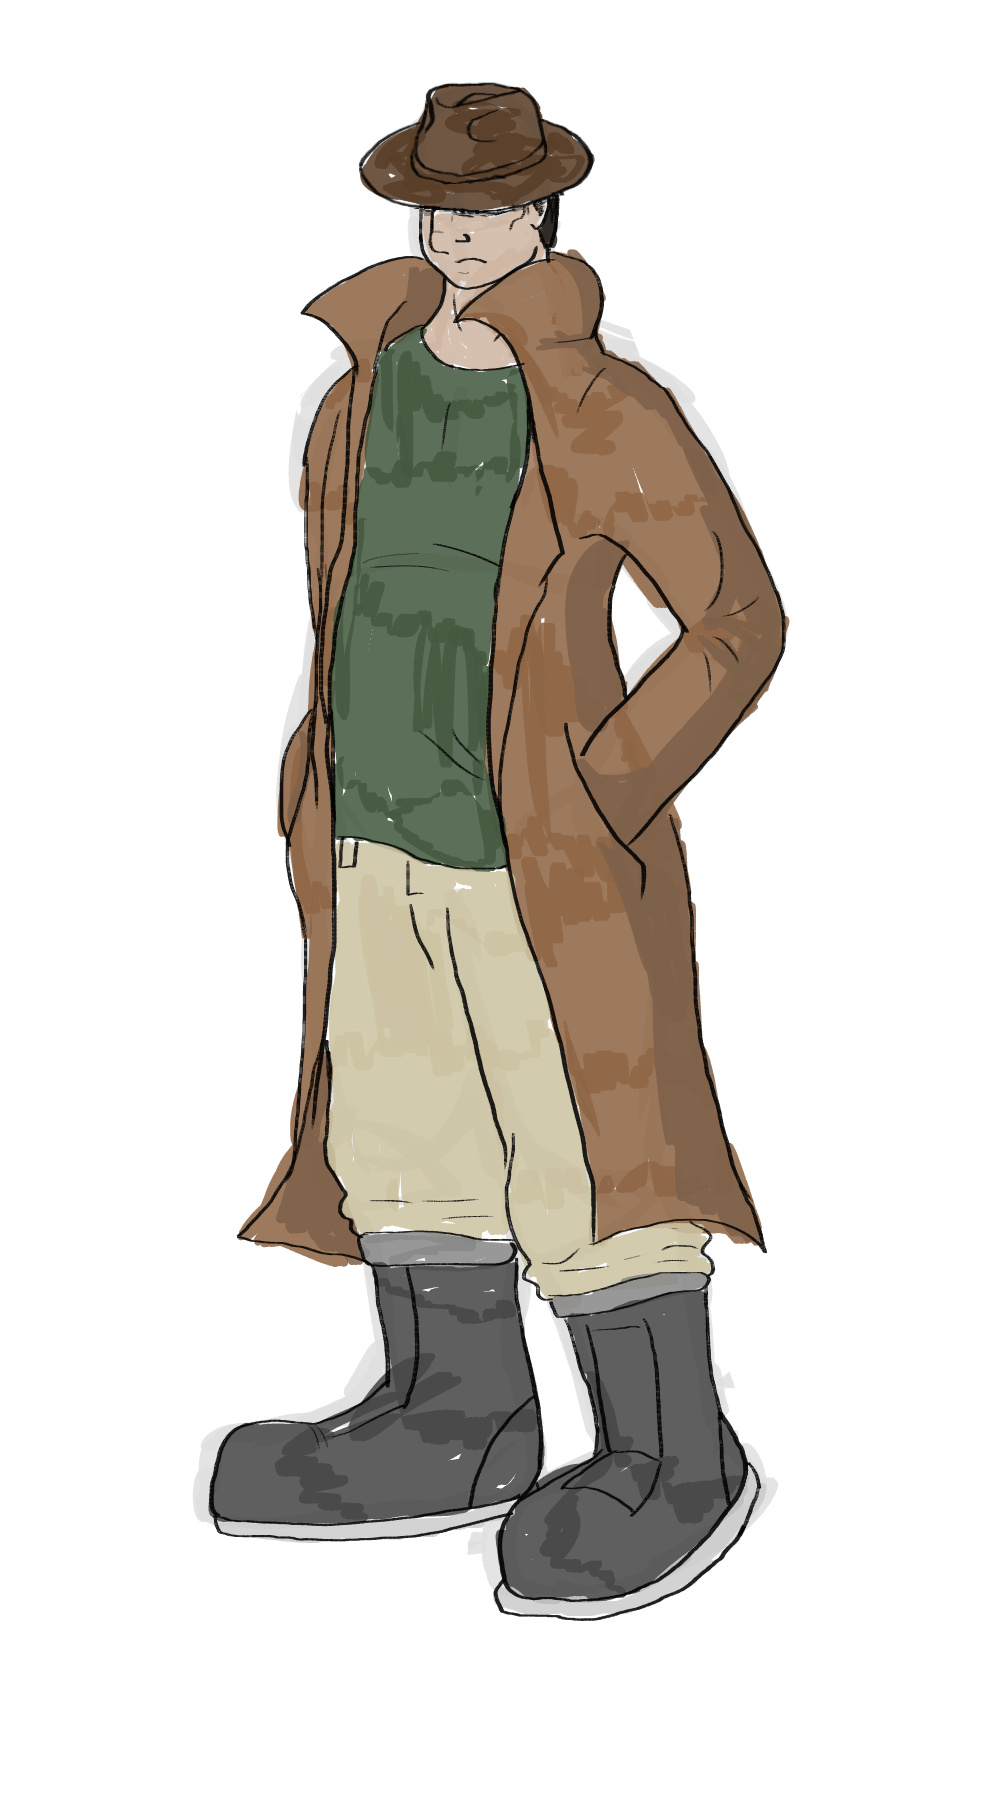 Neckbeard drawing trench coat. Agentdrako commission guy by